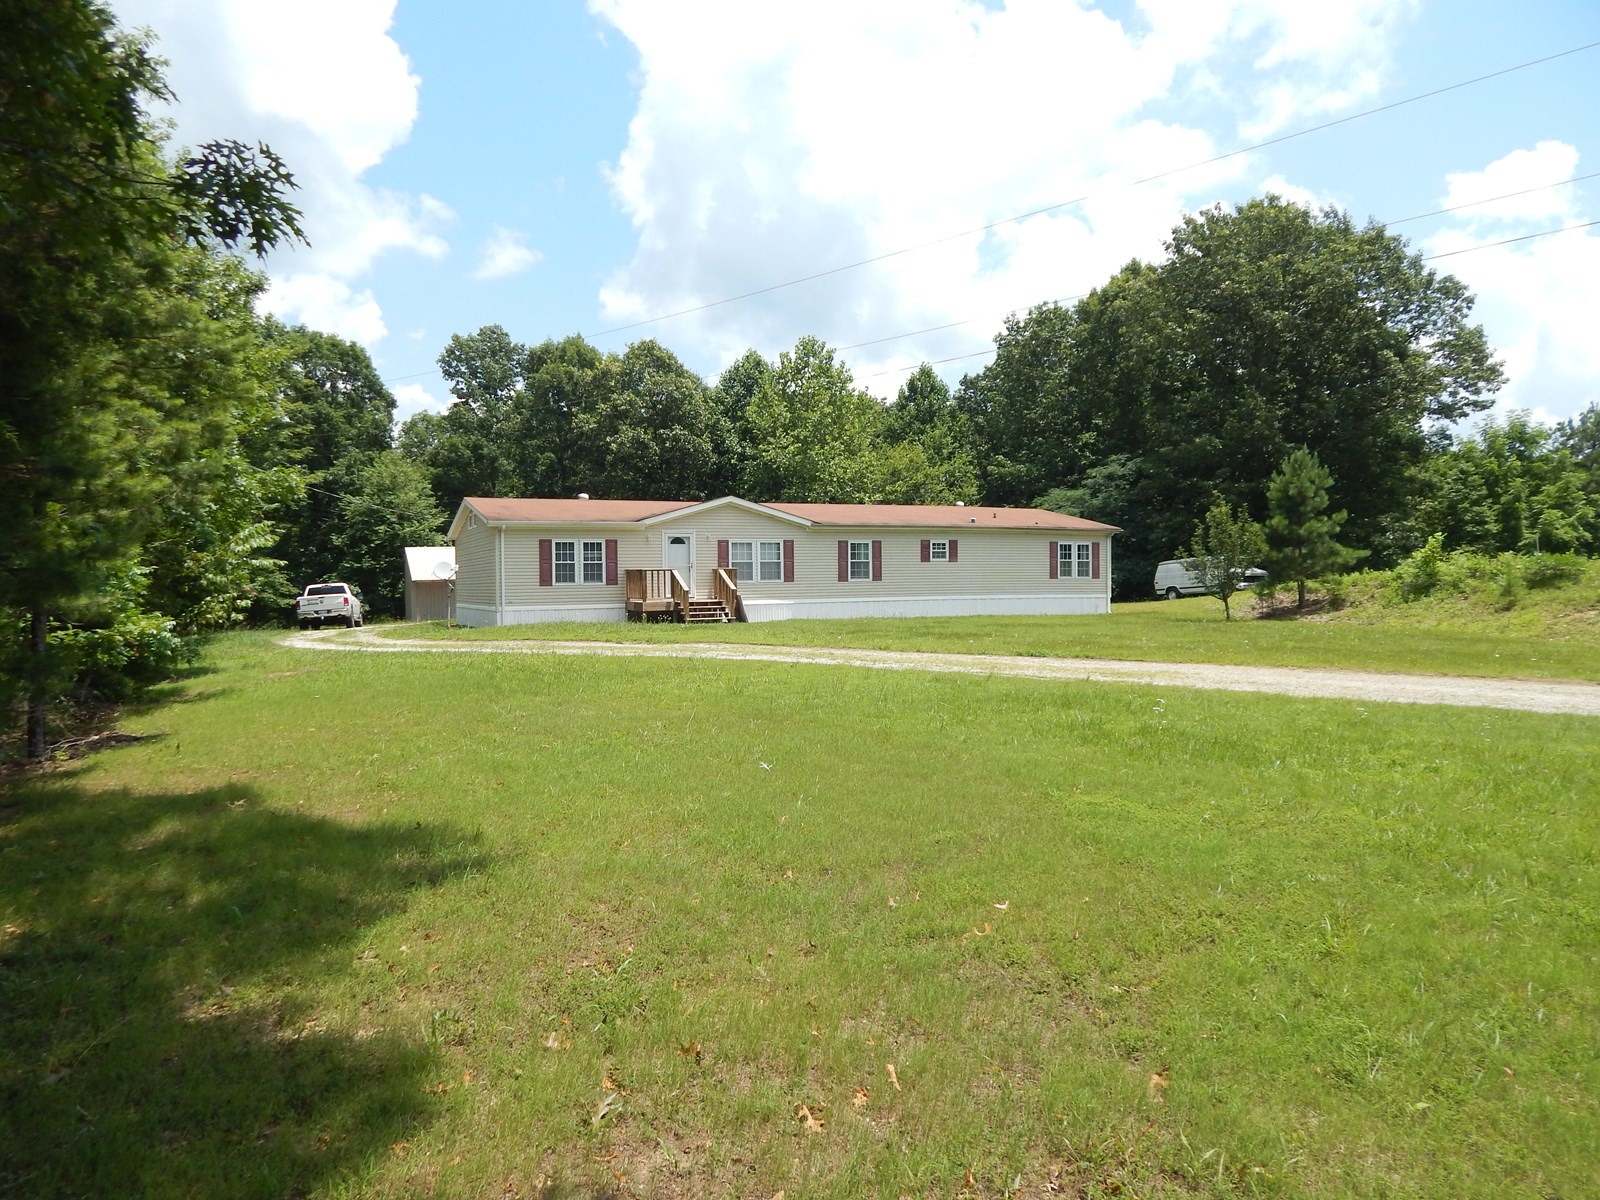 Tennessee Country Home 4 bed 2 bath on 6.9 Wooded Acres!